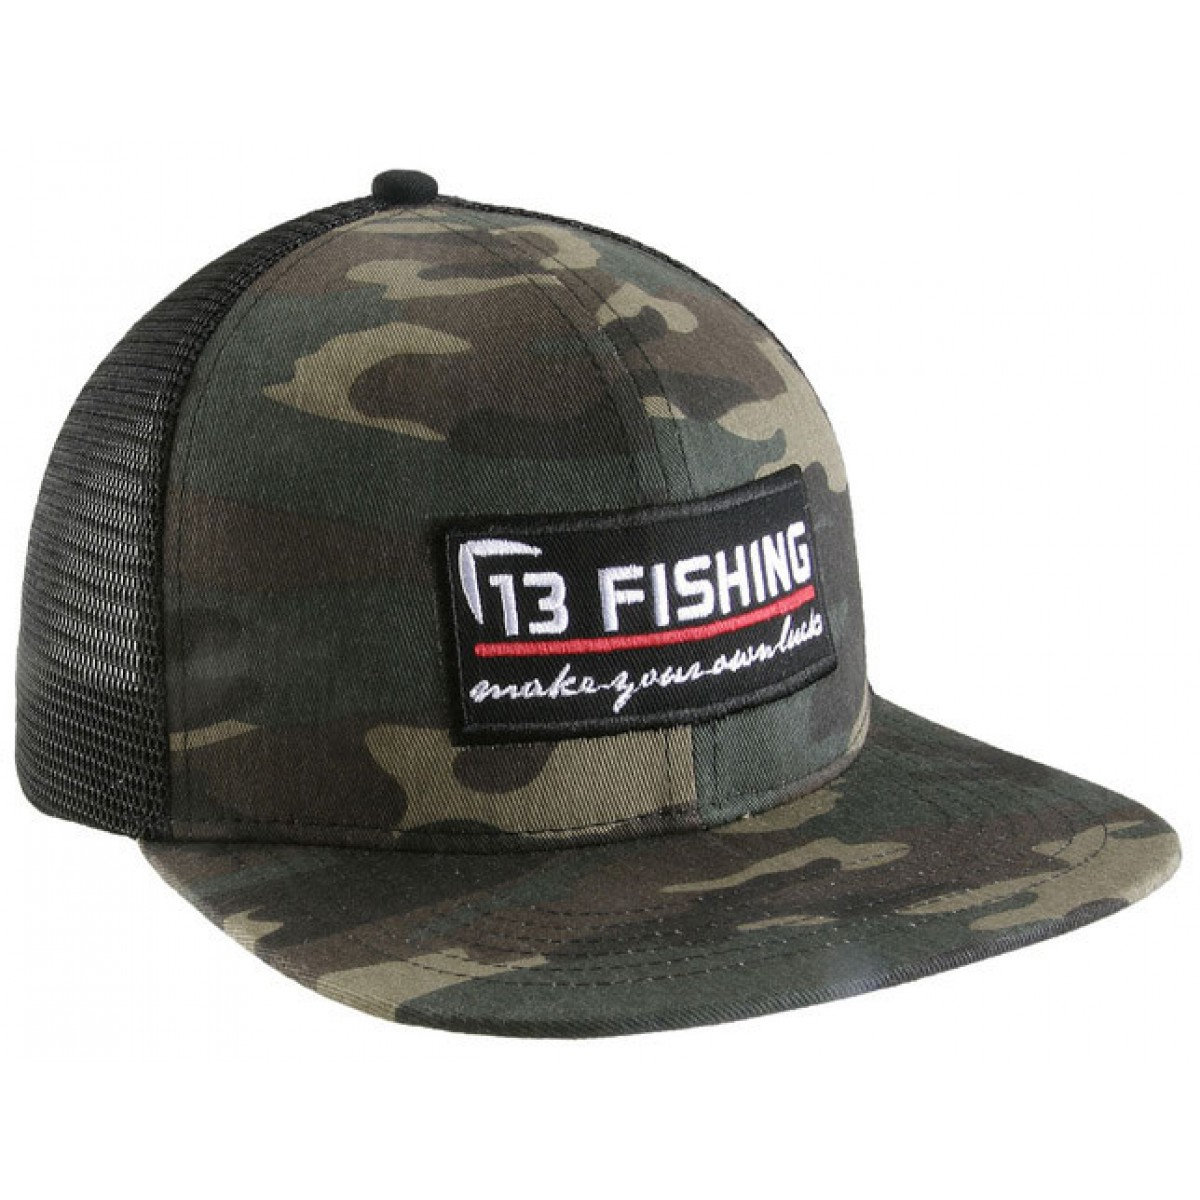 516d8afb1 ... walmart 04423 d171a best price 13fishing hats and visors susquehanna  fishing tackle 08f31 1c14f official store batman ...